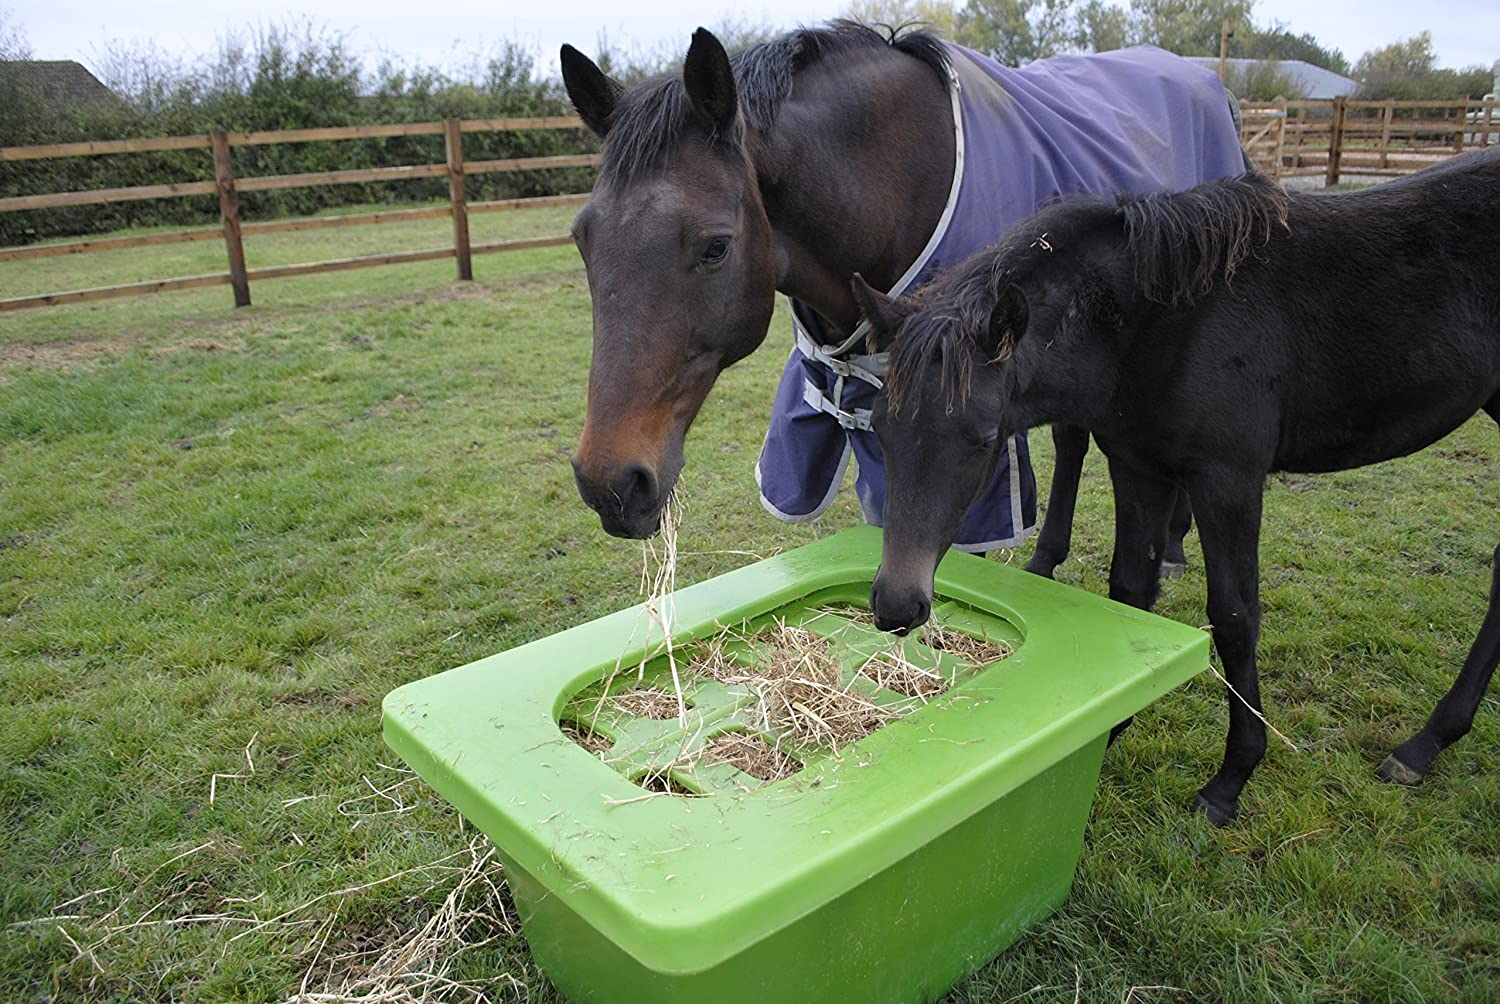 Horse Feeder   Hay Saver   Slow Feeder   Manufactured In The UK (Green):  Amazon.co.uk: Sports U0026 Outdoors